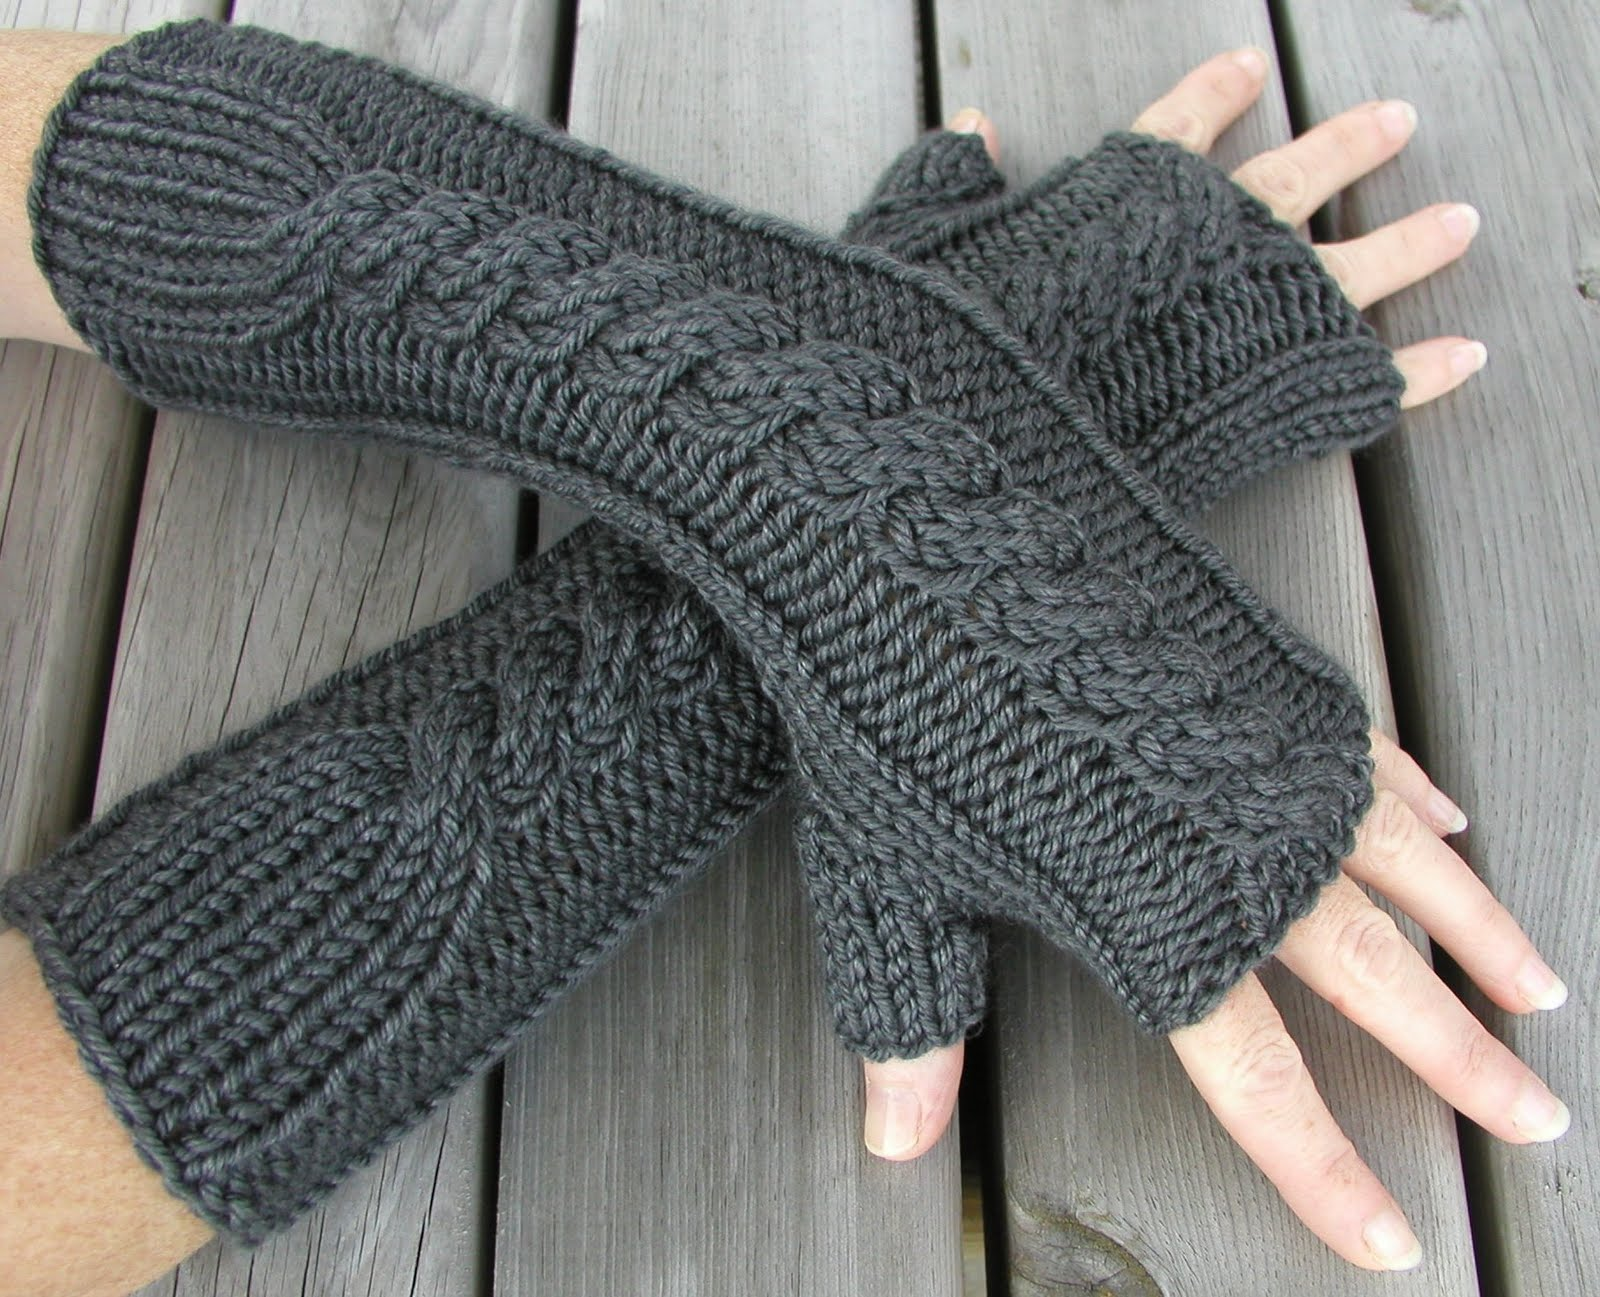 knitting patterns for gloves without fingers k--k.club 2017